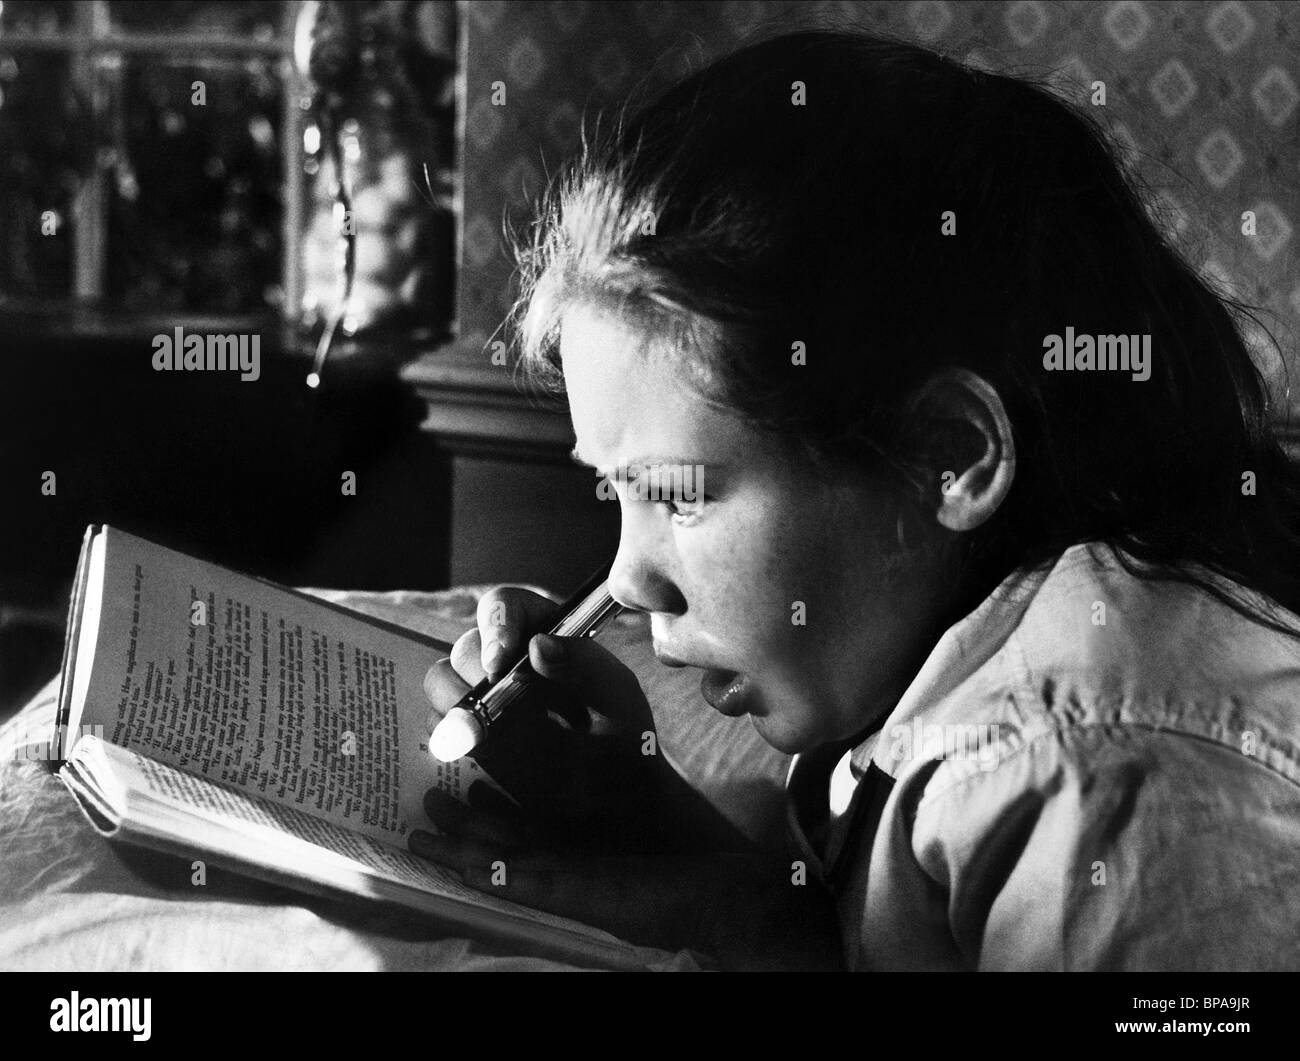 KAREN BALKIN THE CHILDREN'S HOUR (1961) - Stock Image